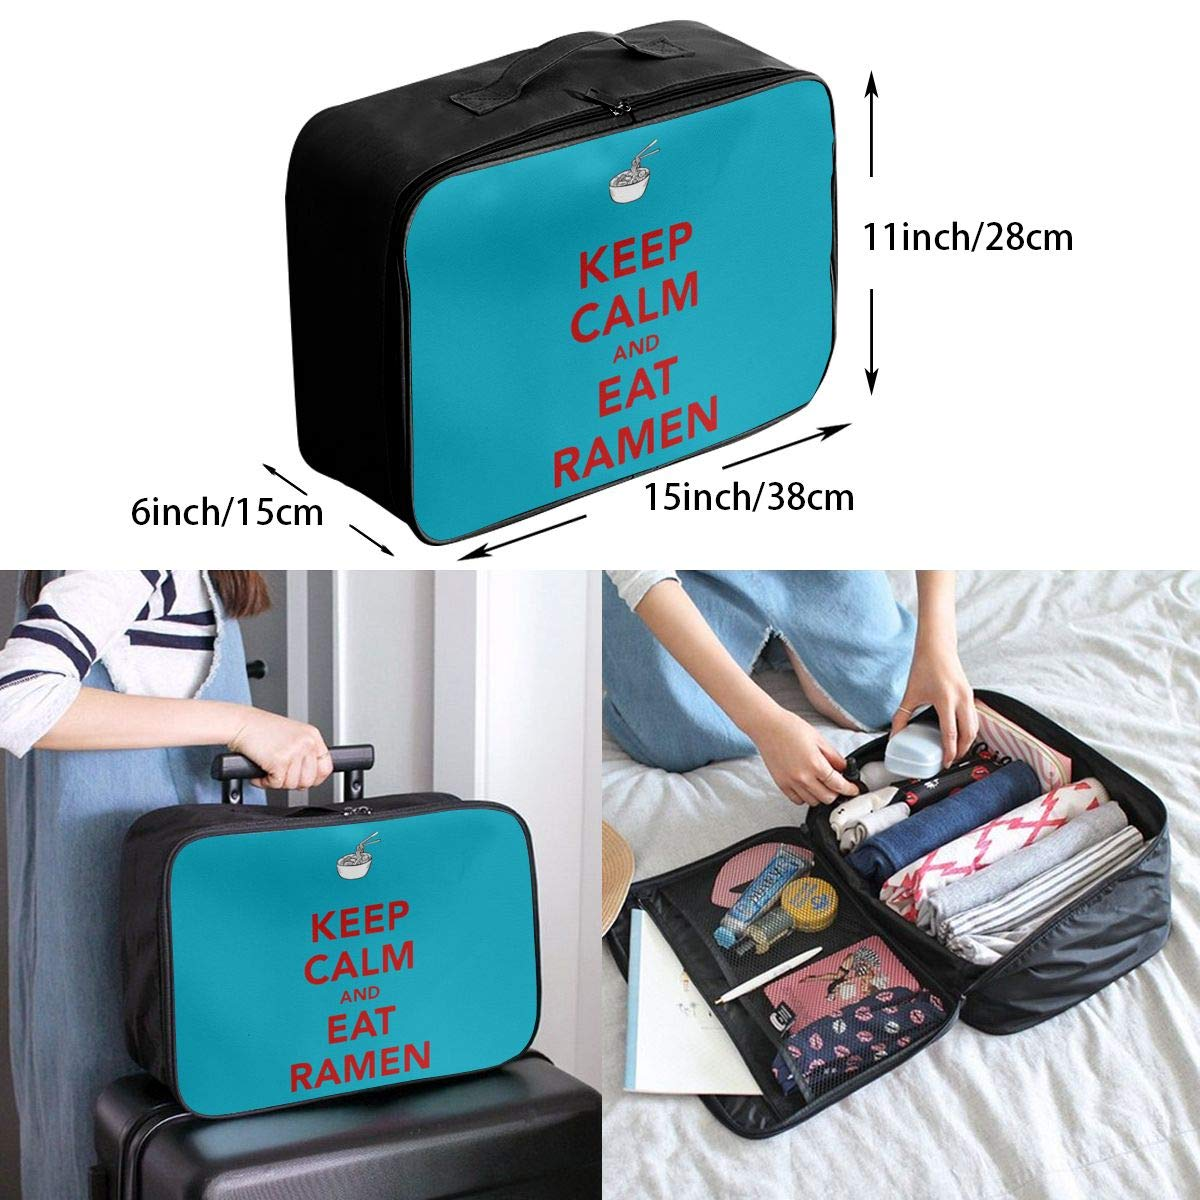 Travel Luggage Duffle Bag Lightweight Portable Handbag Ramen Noodles Large Capacity Waterproof Foldable Storage Tote